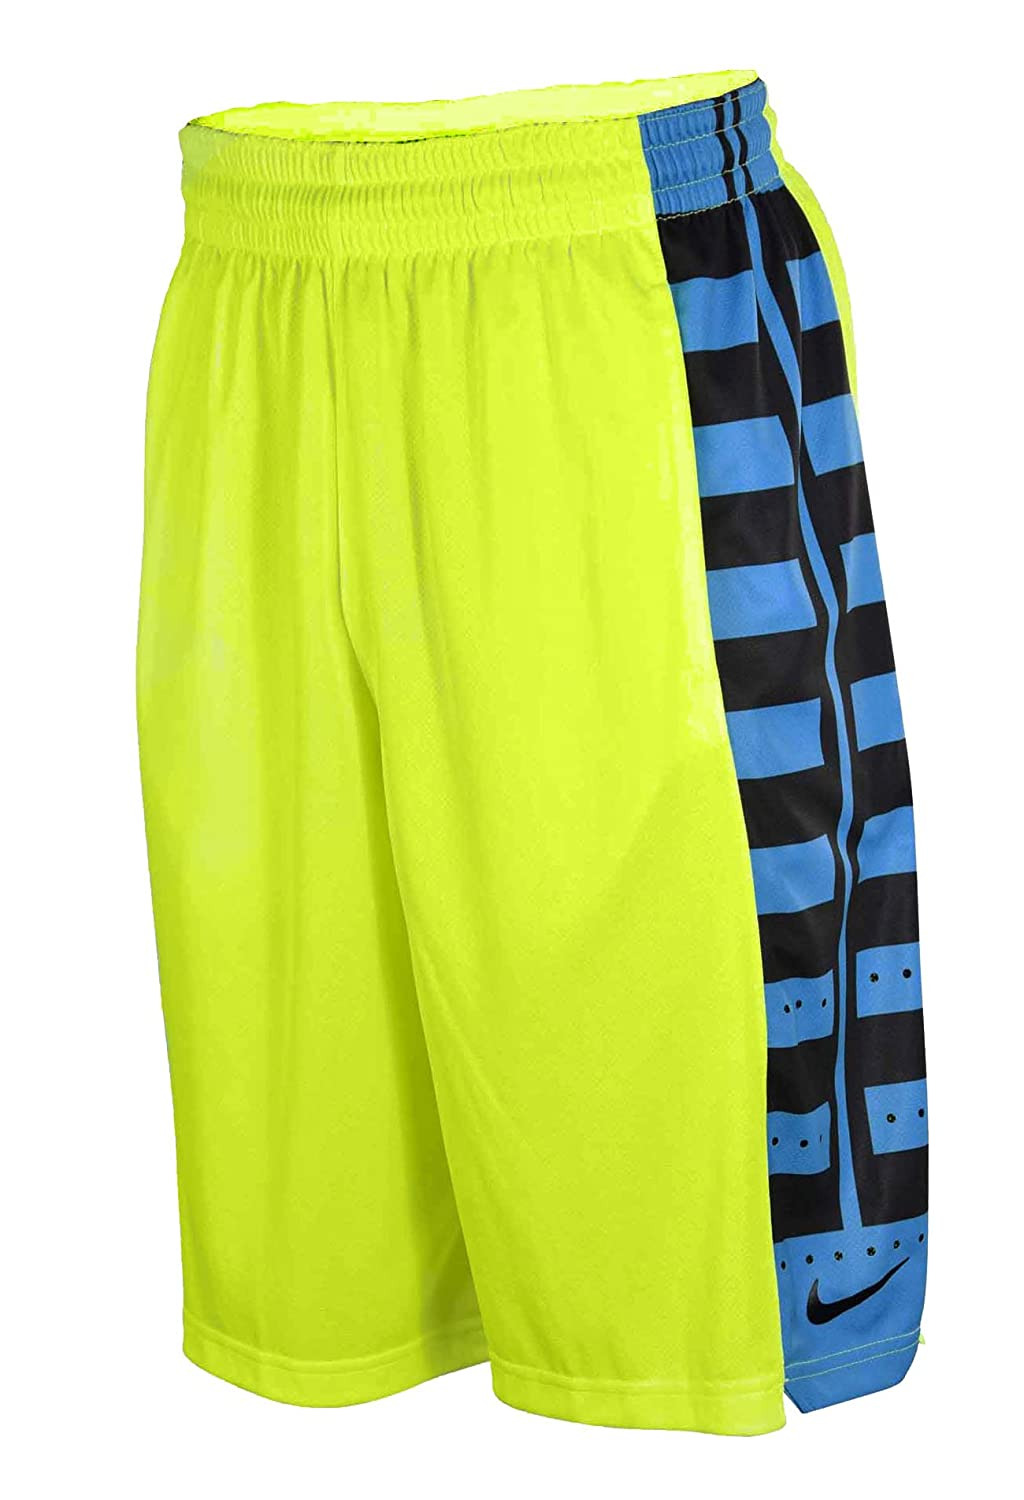 Men's Nike Elite Fanatical Basketball Shorts чулок д щитков nike guard lock elite sleeve su12 se0173 011 m чёрный